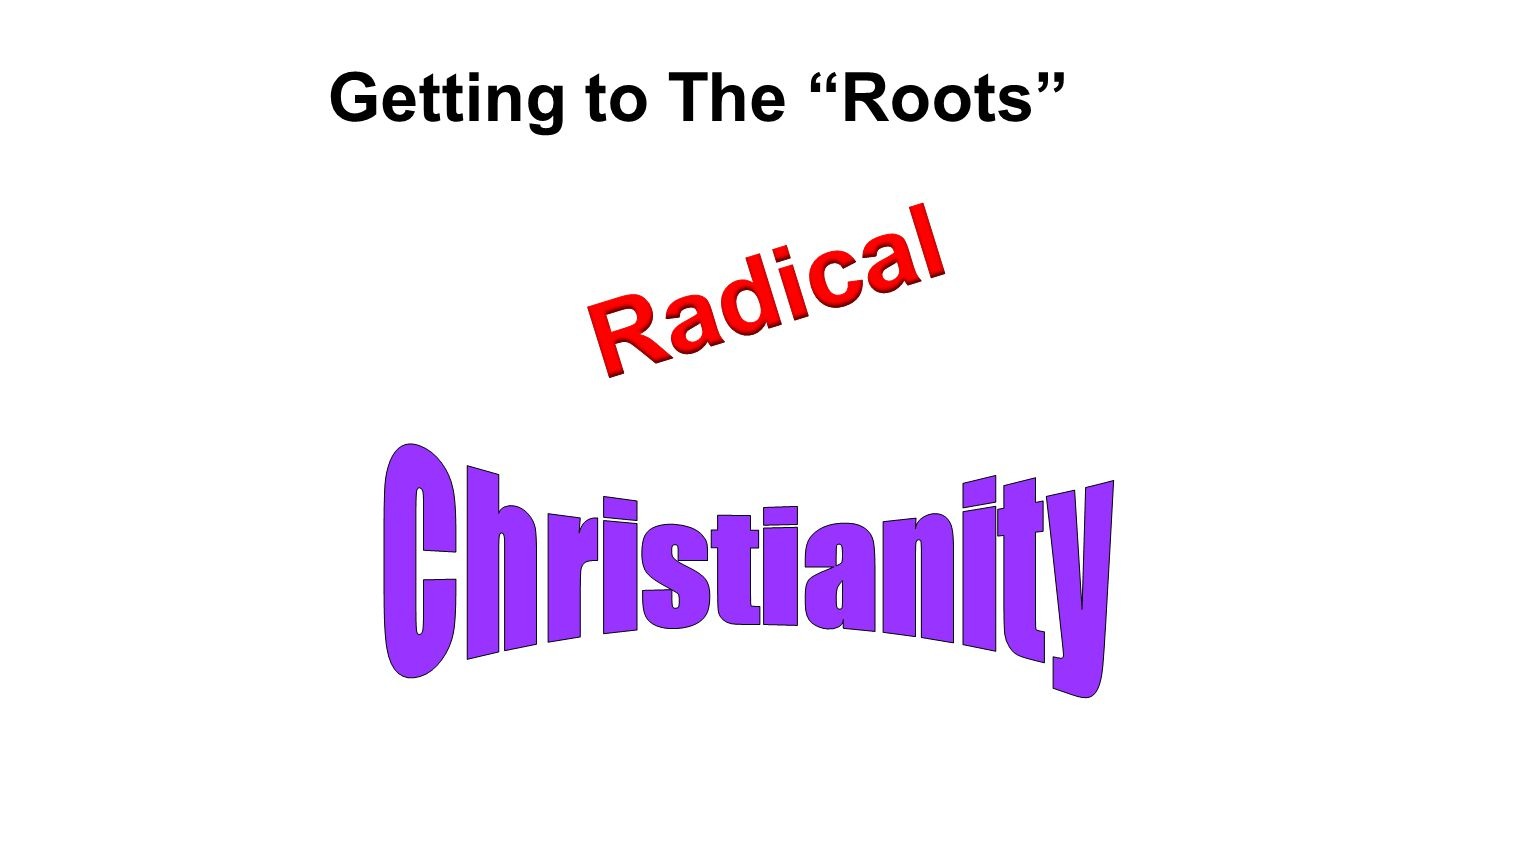 Getting to The Roots Radical Christianity